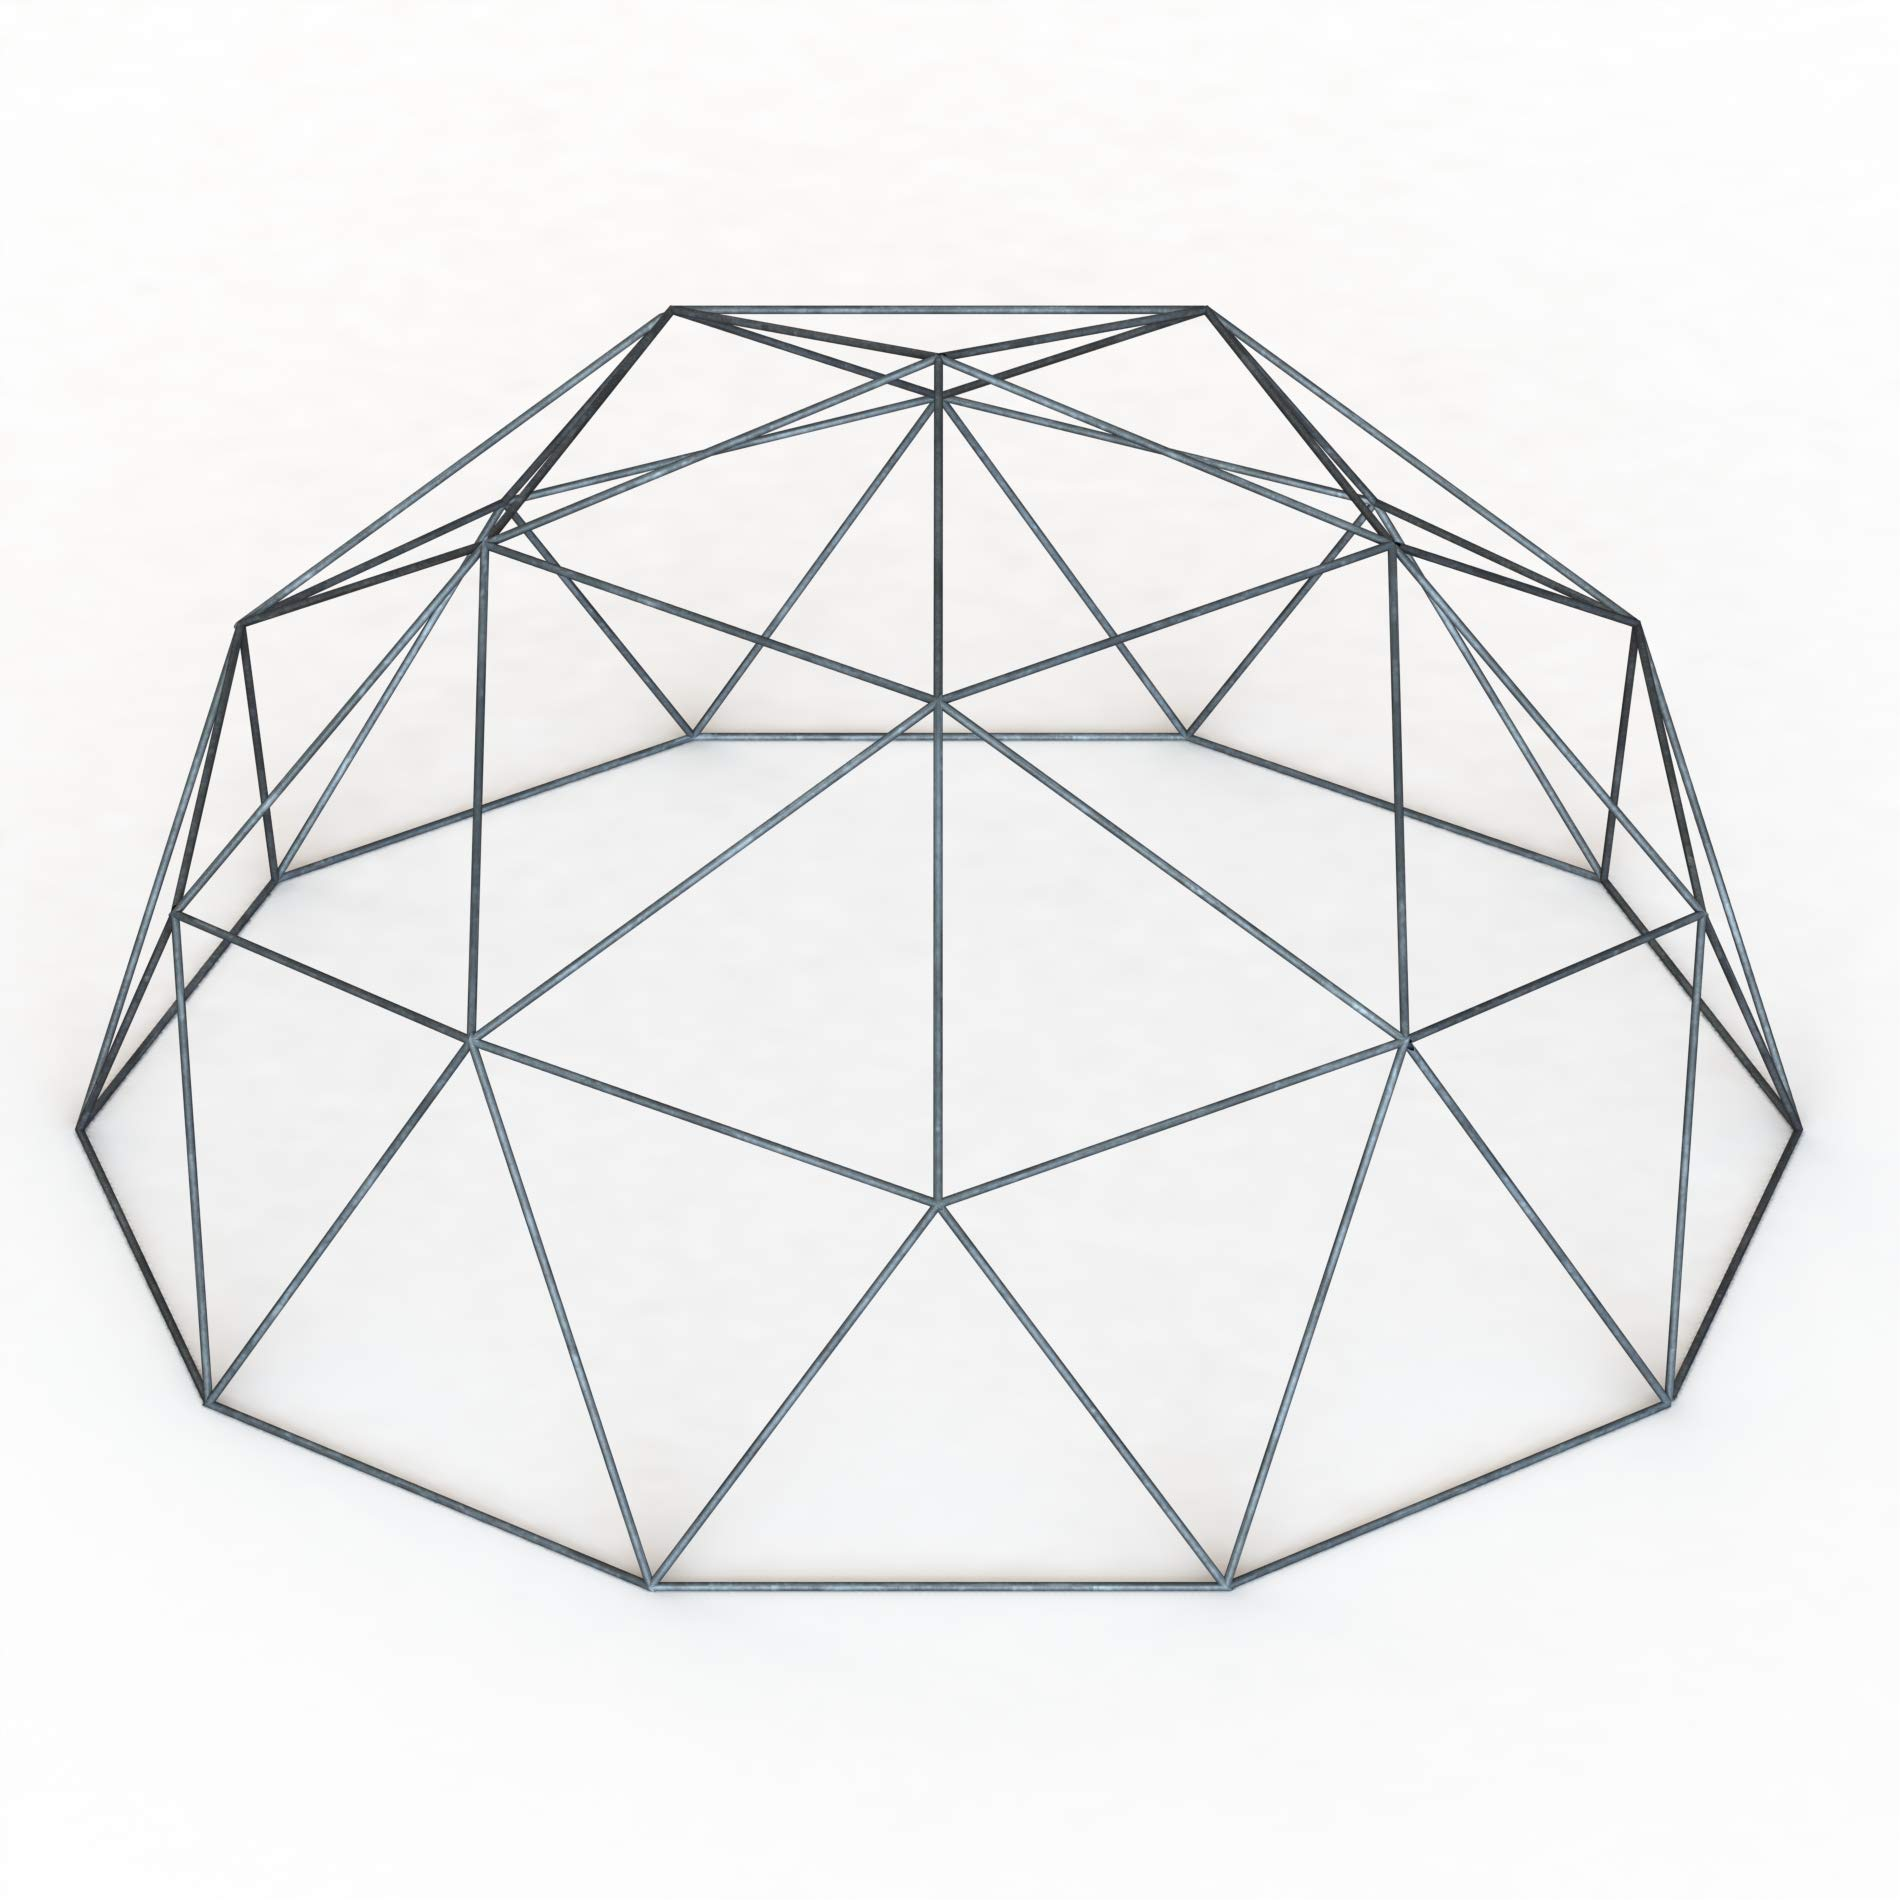 Thunder-Domes 18ft Geodesic Hammock Dome-Greenhouse-Shelter